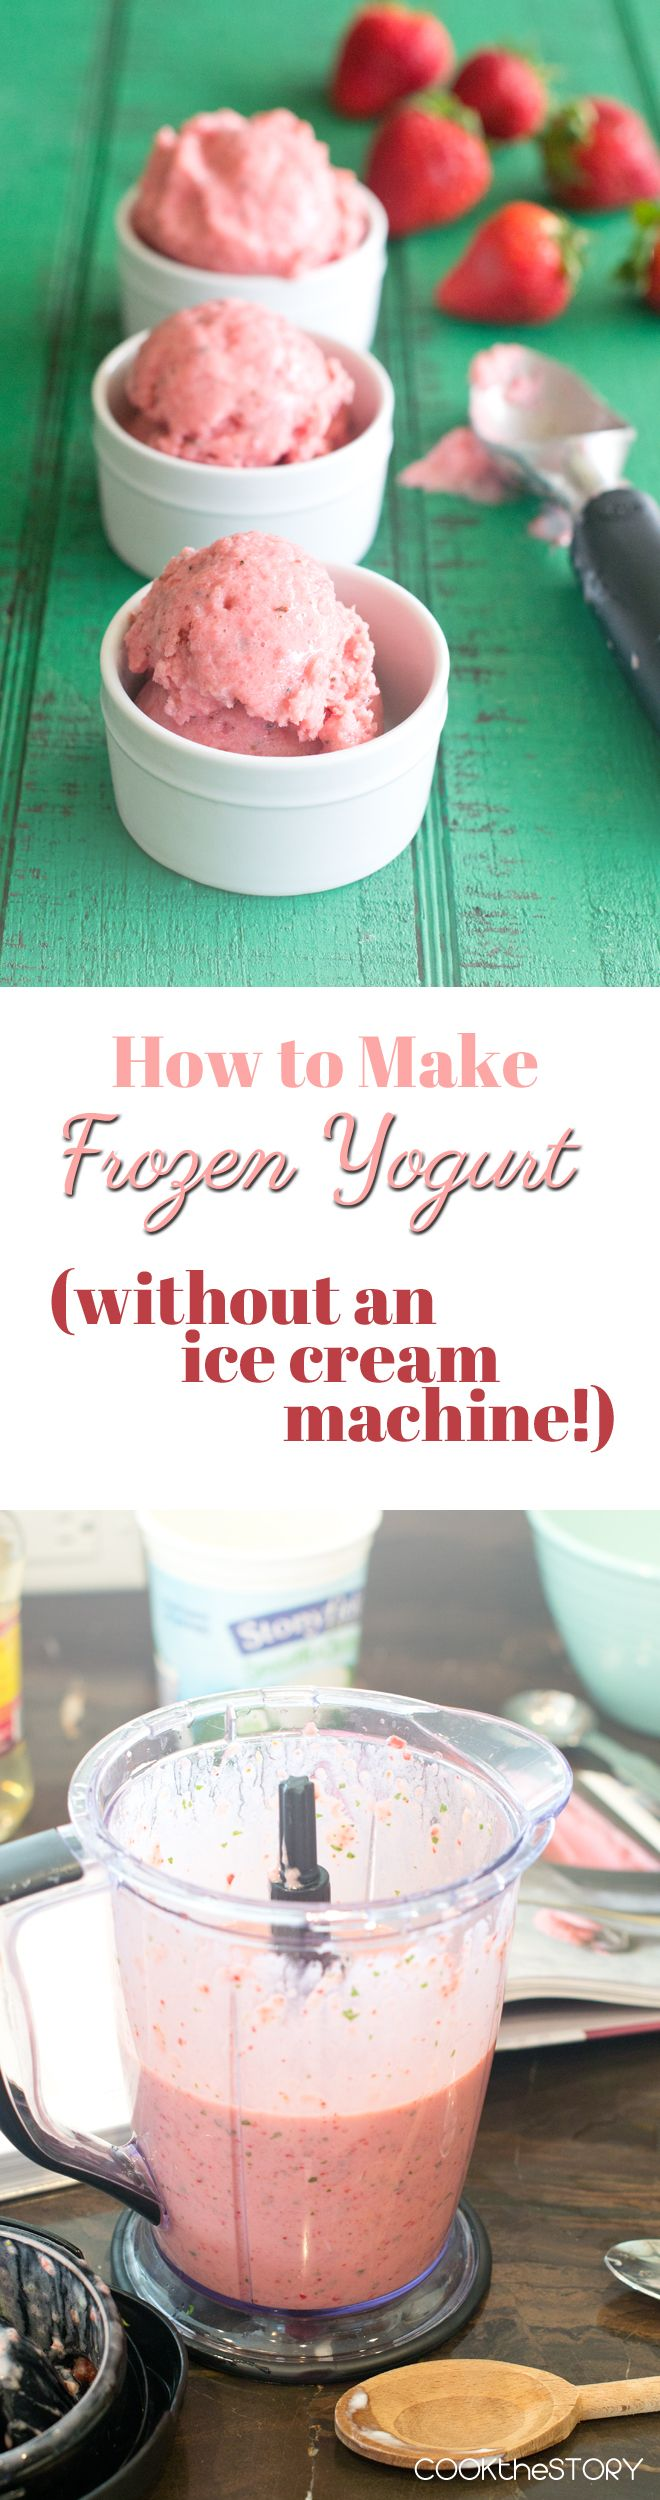 Recipe for no-churn Strawberry Frozen Yogurt with Basil and Lemon - no machine is needed to make this delicious dessert.